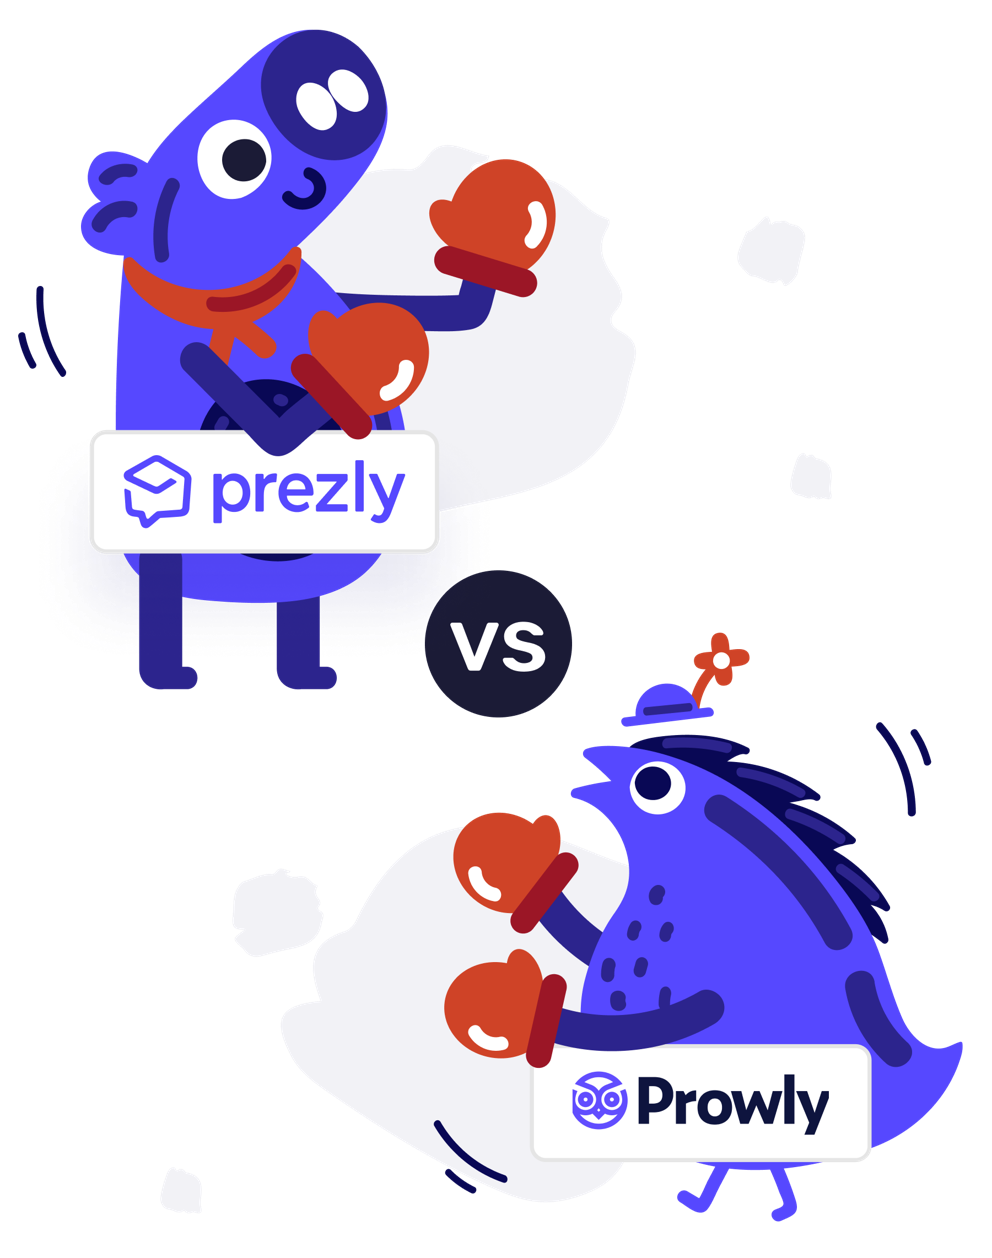 prowly.png